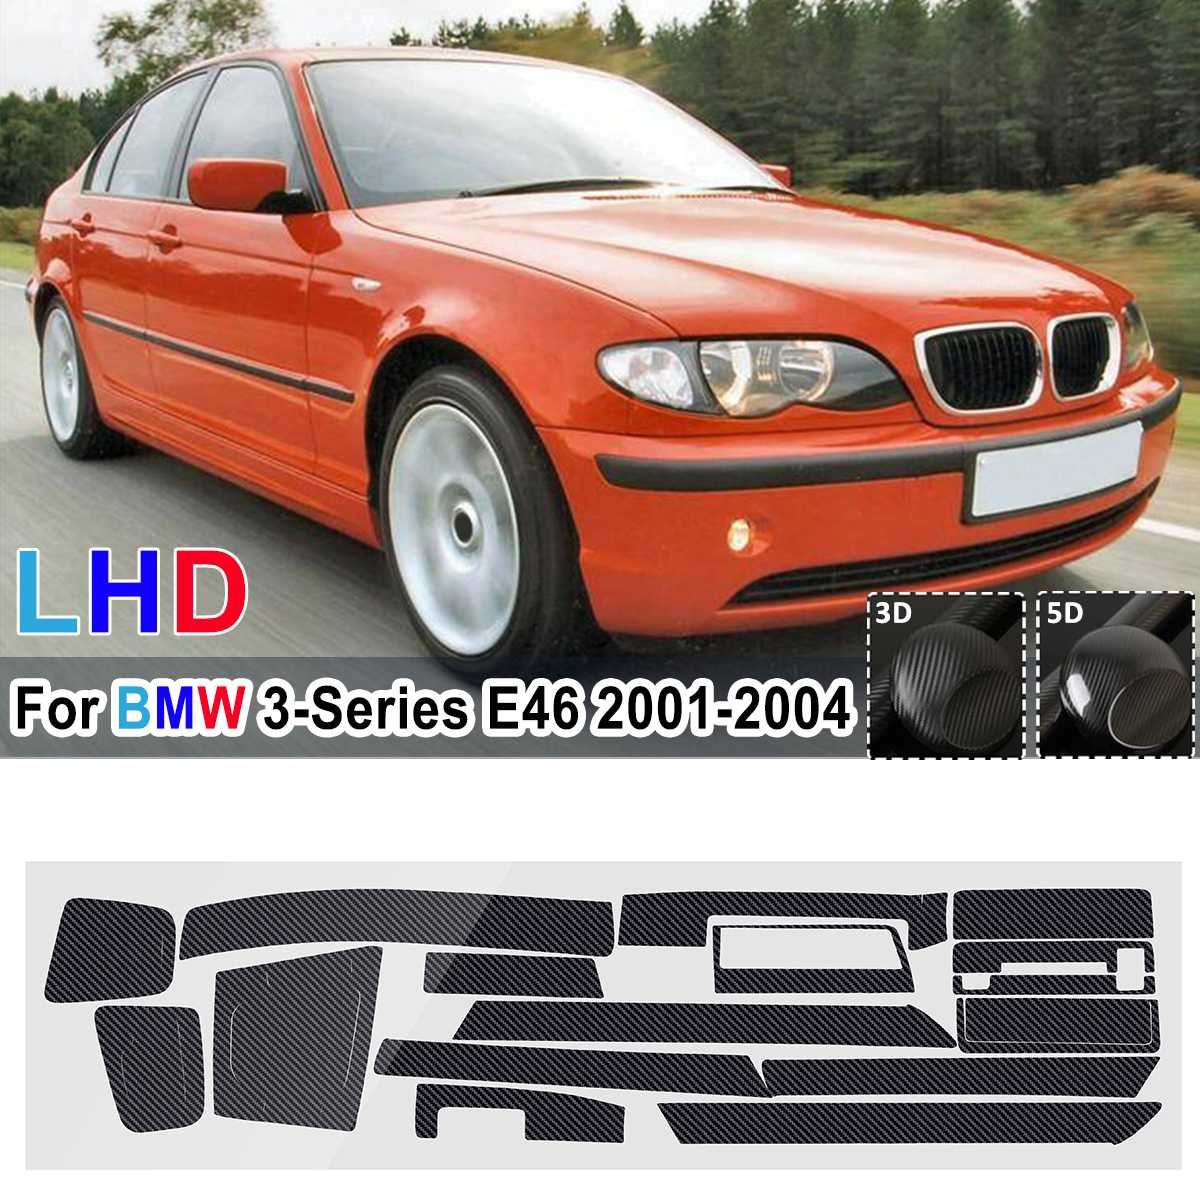 18Pcs Glossy/ Matte DIY Sticker Carbon Fiber Style Sticker Vinyl Decal Trim For BMW 3-Series E46 2001 <font><b>2002</b></font> 2003 2004 LHD Only image